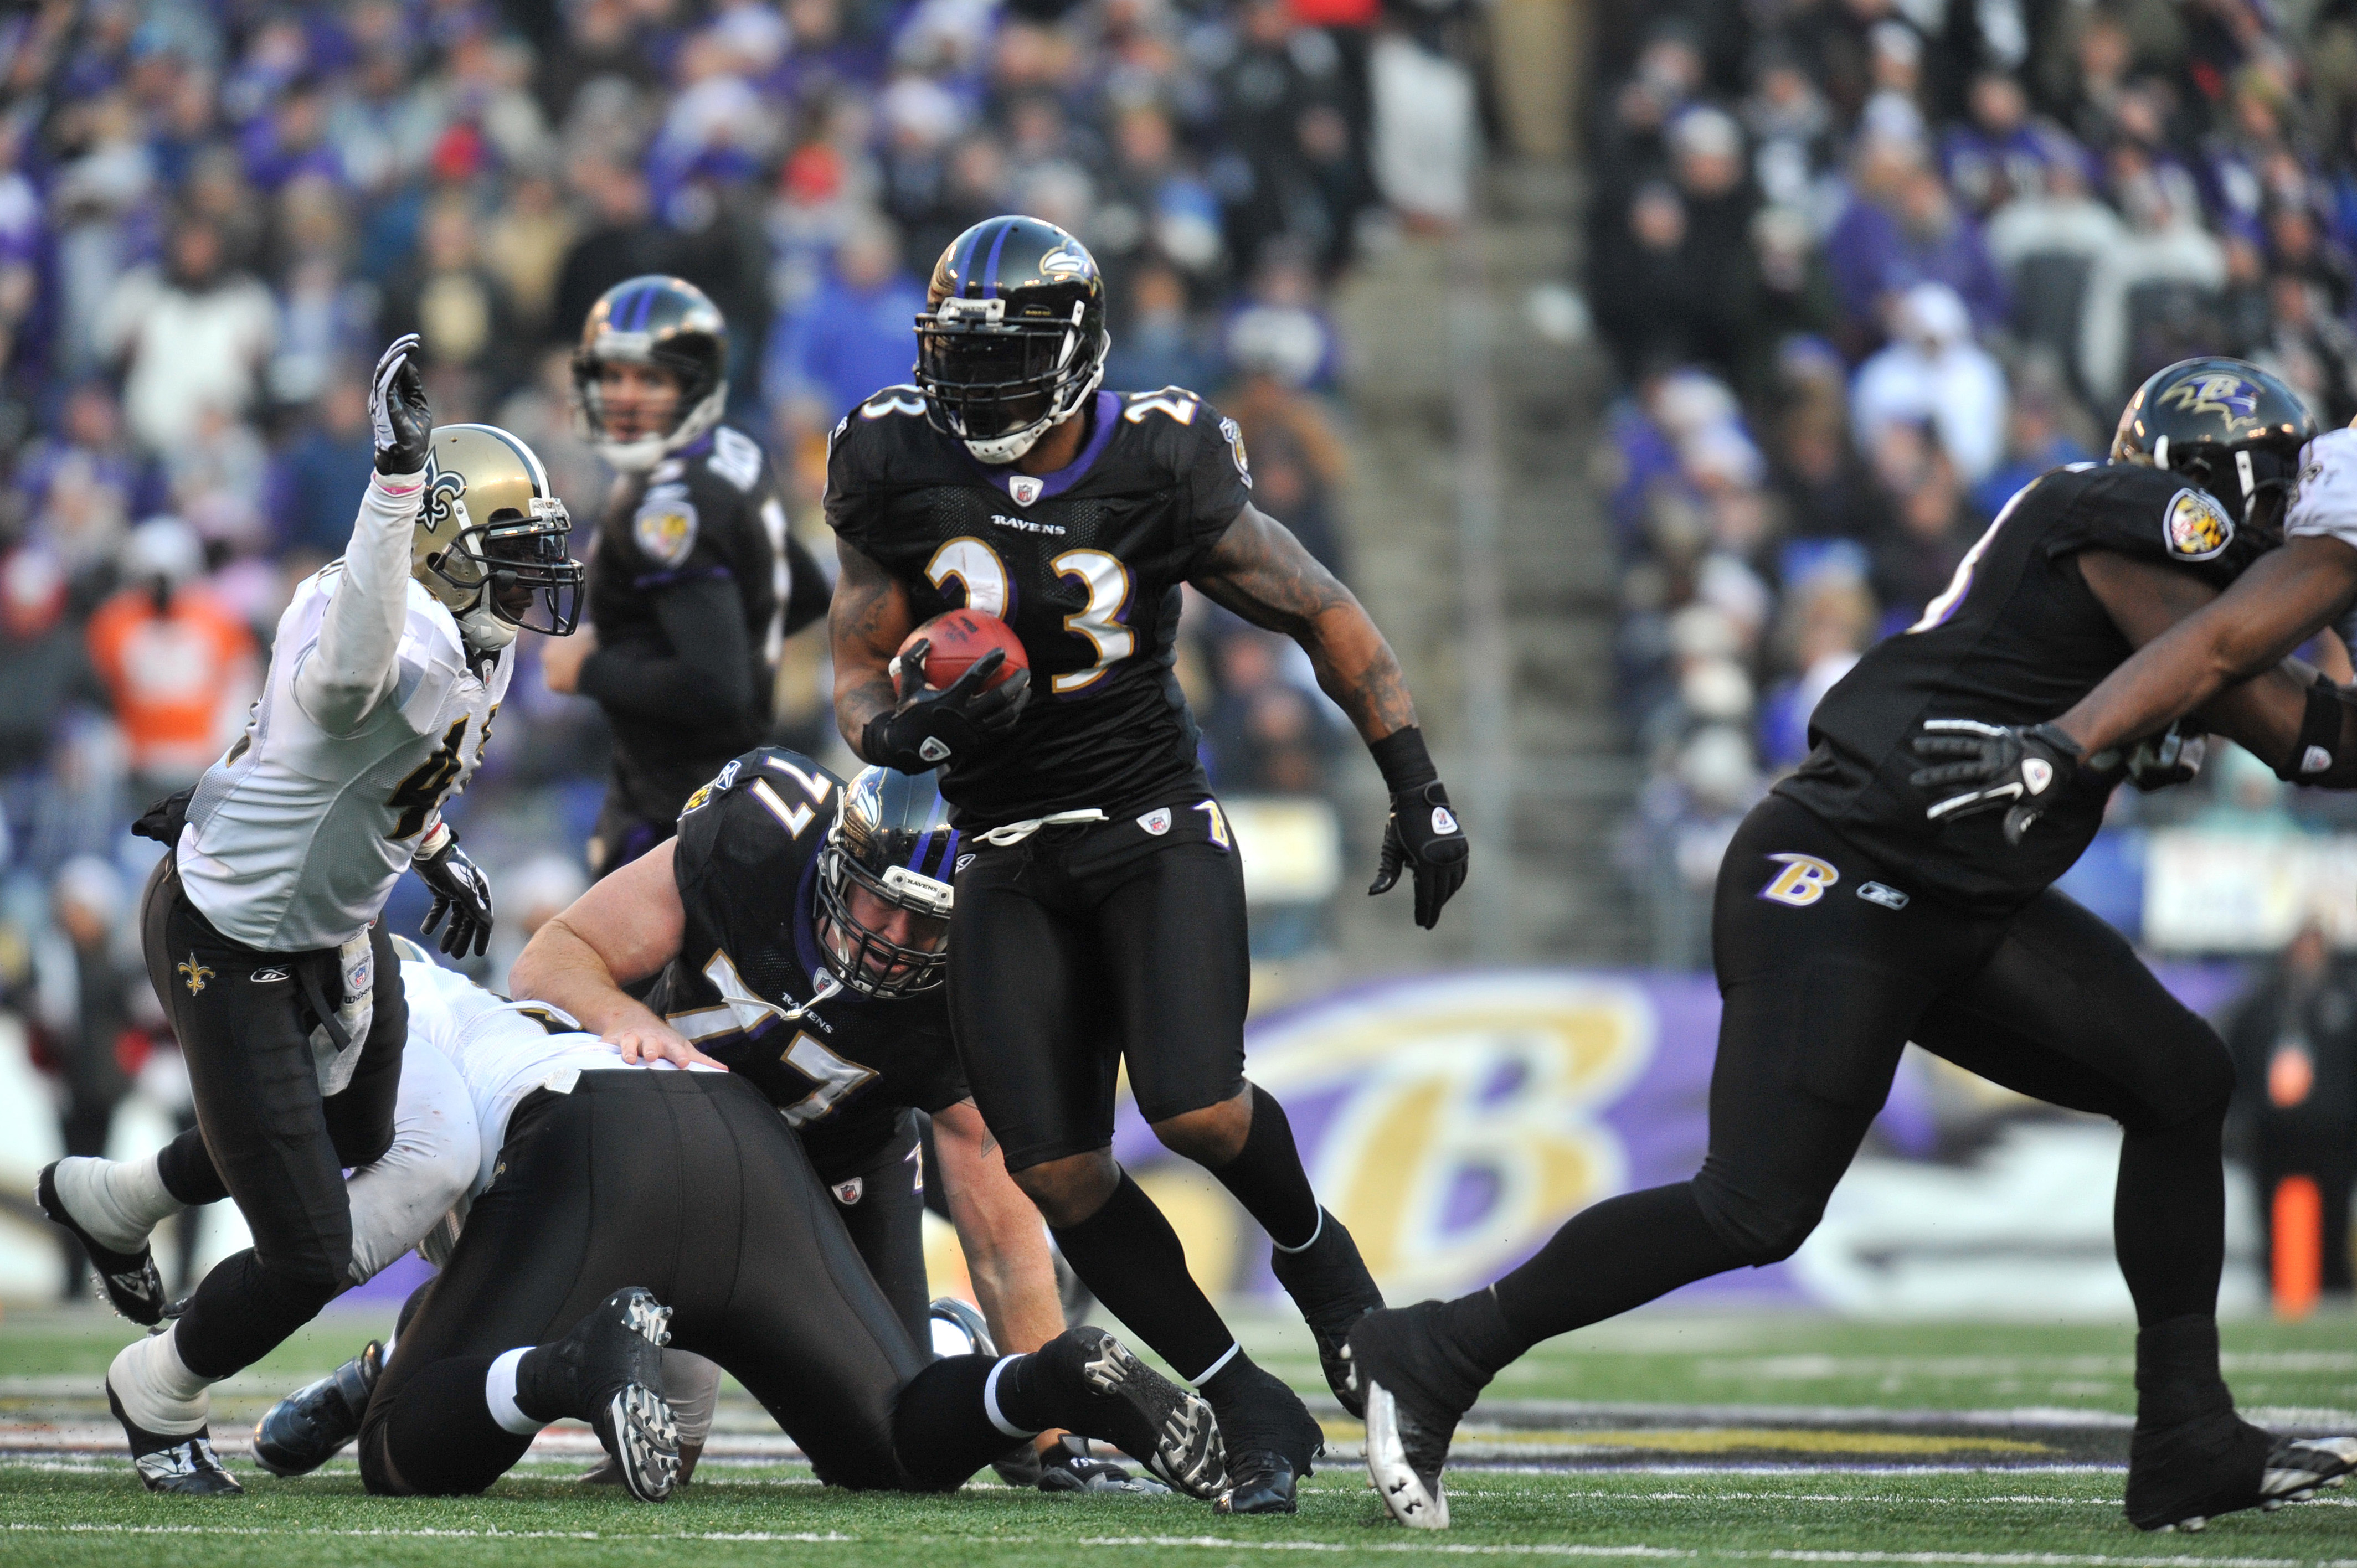 BALTIMORE, MD - DECEMBER 19:  Willis McGahee #23 of the Baltimore Ravens runs the ball during the game against the New Orleans Saints  at M&T Bank Stadium on December 19, 2010 in Baltimore, Maryland. The Ravens defeated the Saints 30-24. (Photo by Larry F